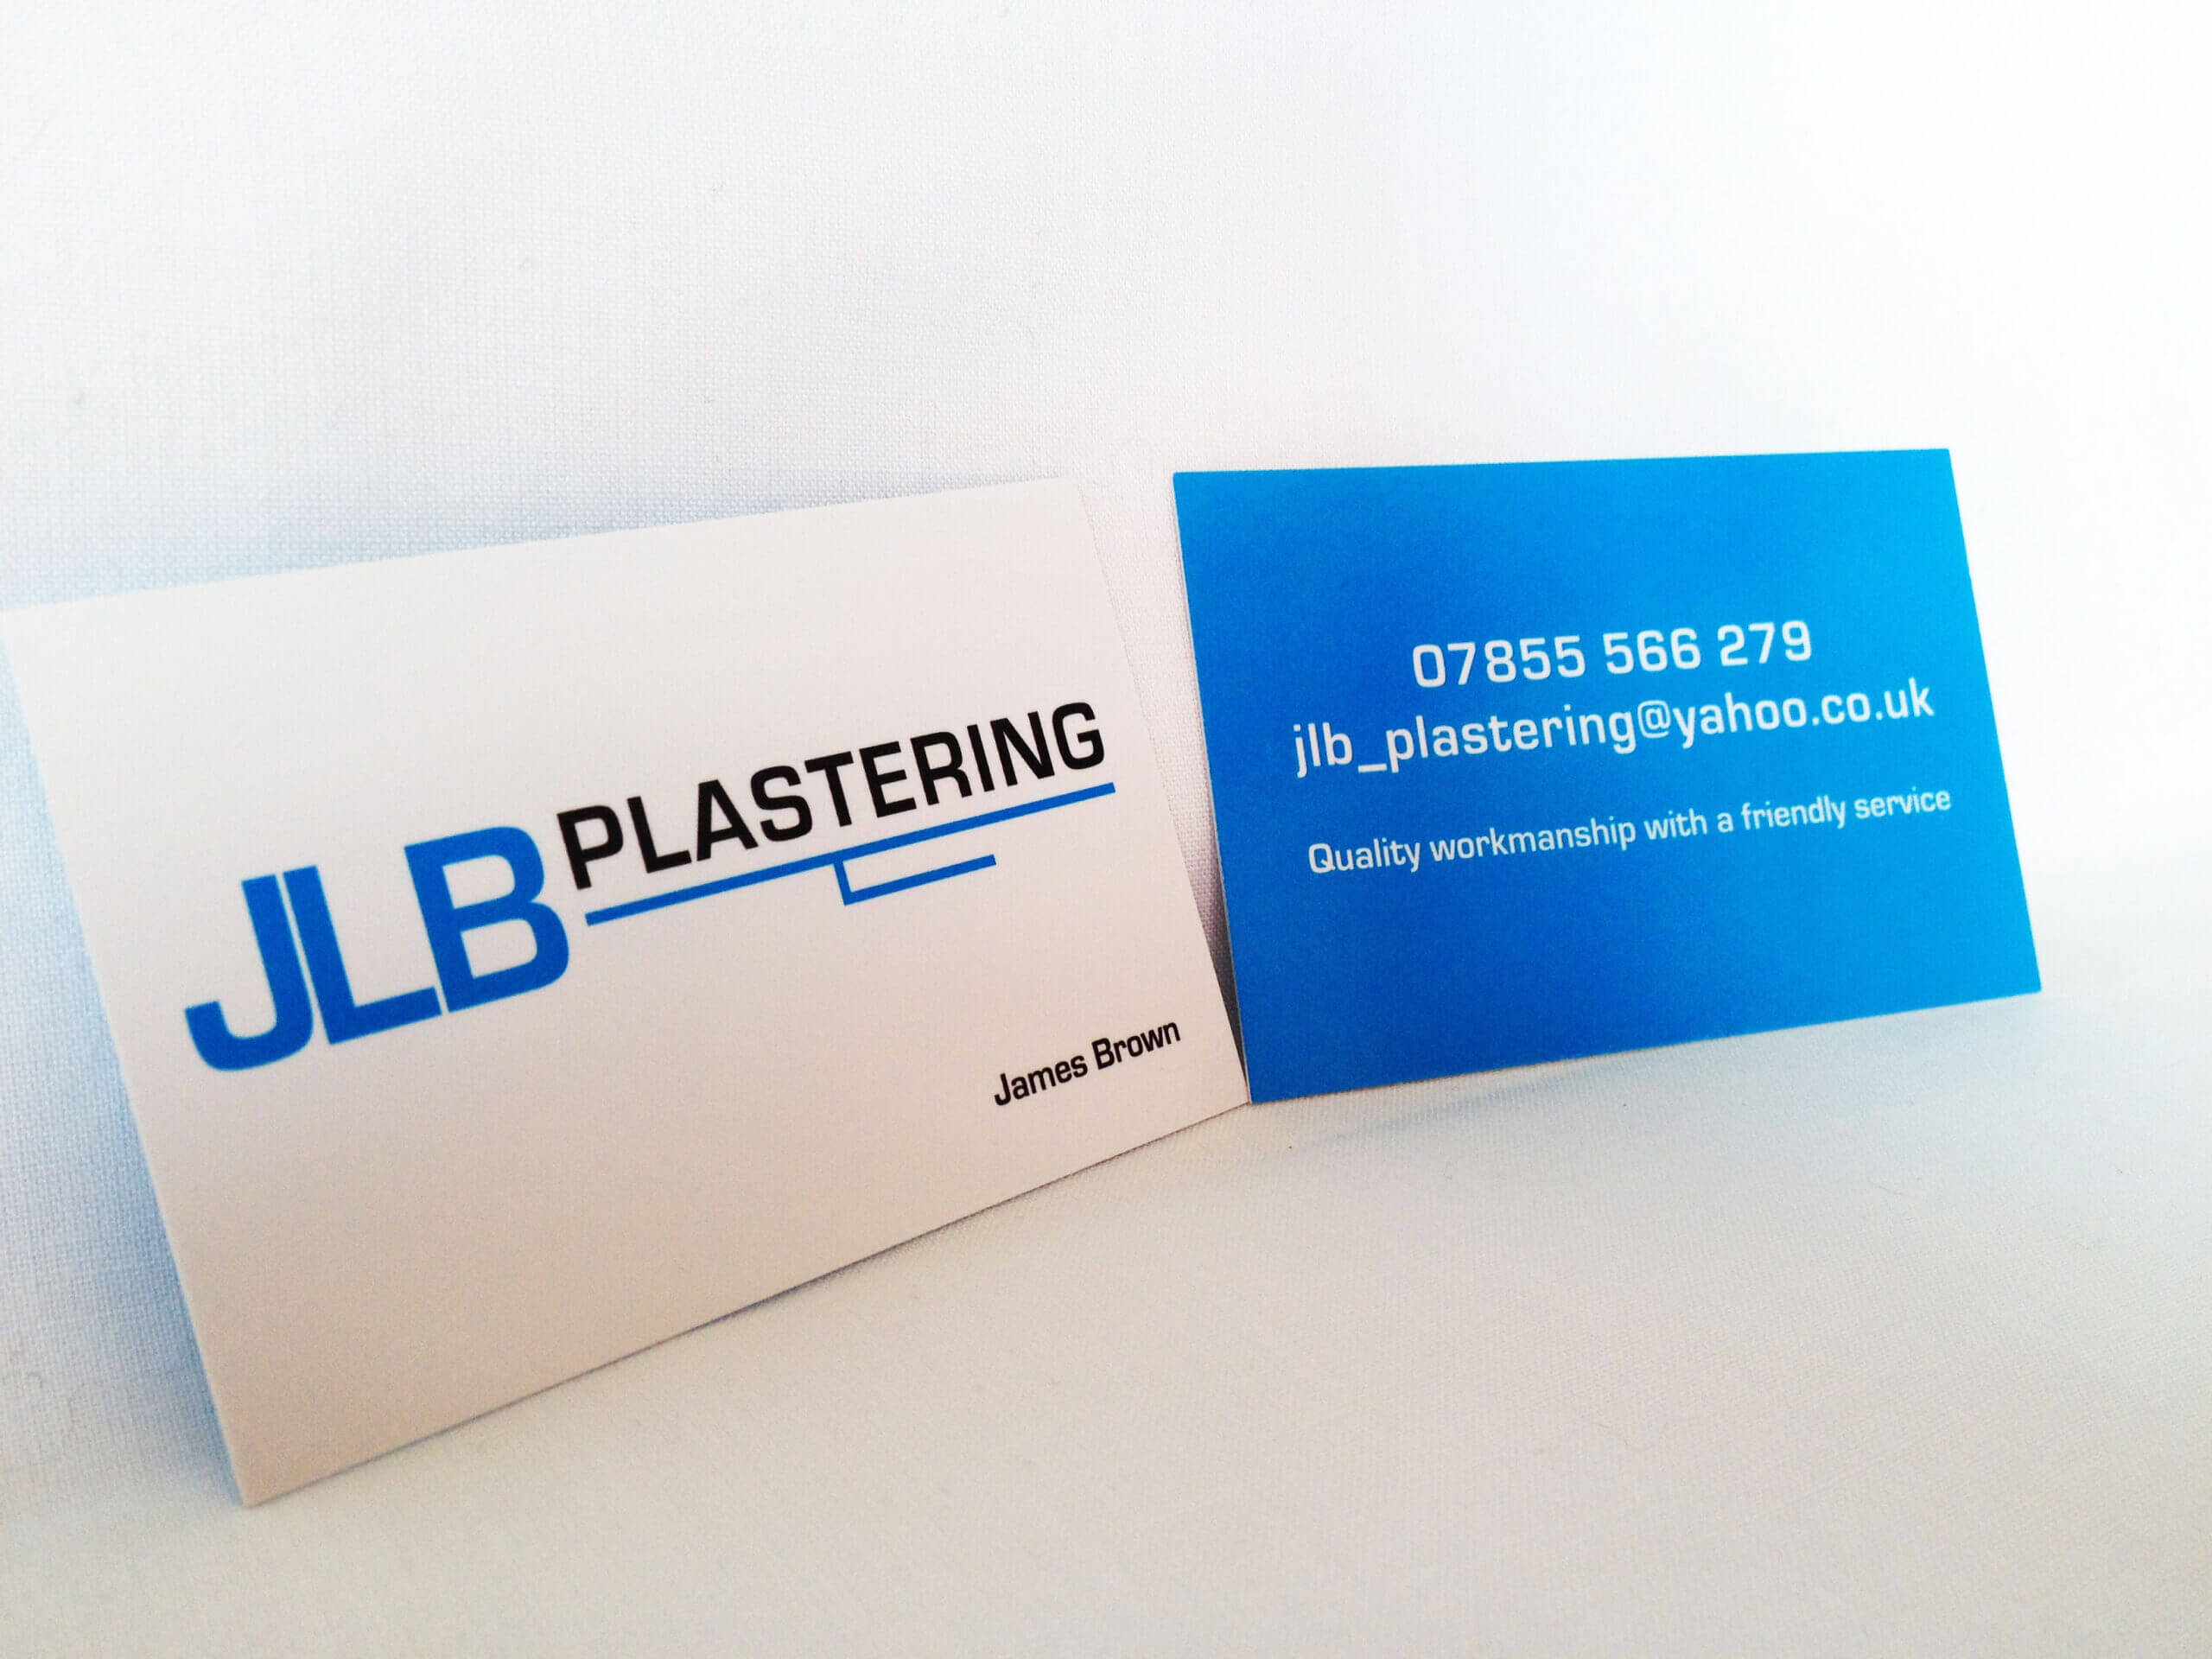 New Jlb Plastering Business Cards And Logo Design | Logos Pertaining To Plastering Business Cards Templates